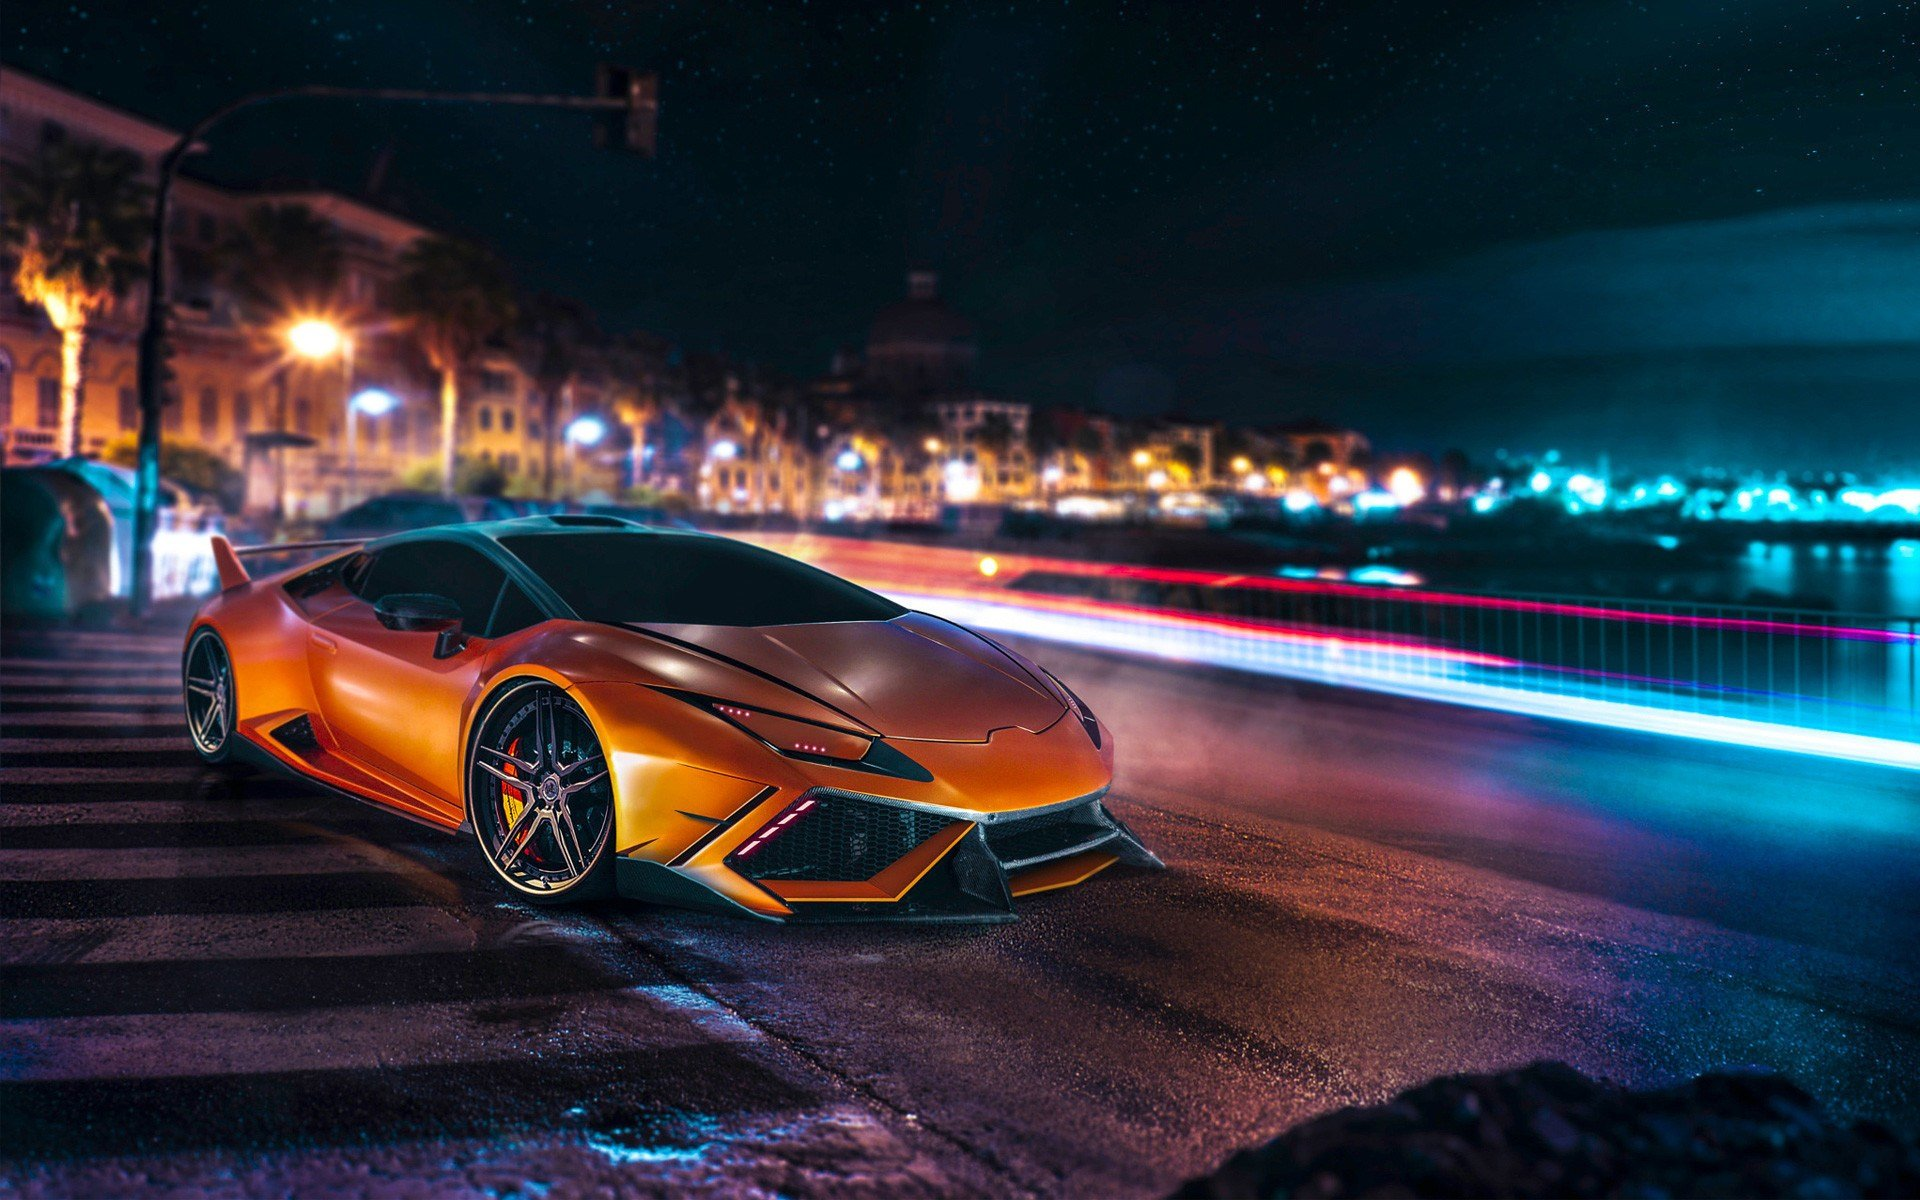 New Wallpaper Full Hd 1080P Lamborghini New 2018 79 Images On This Month